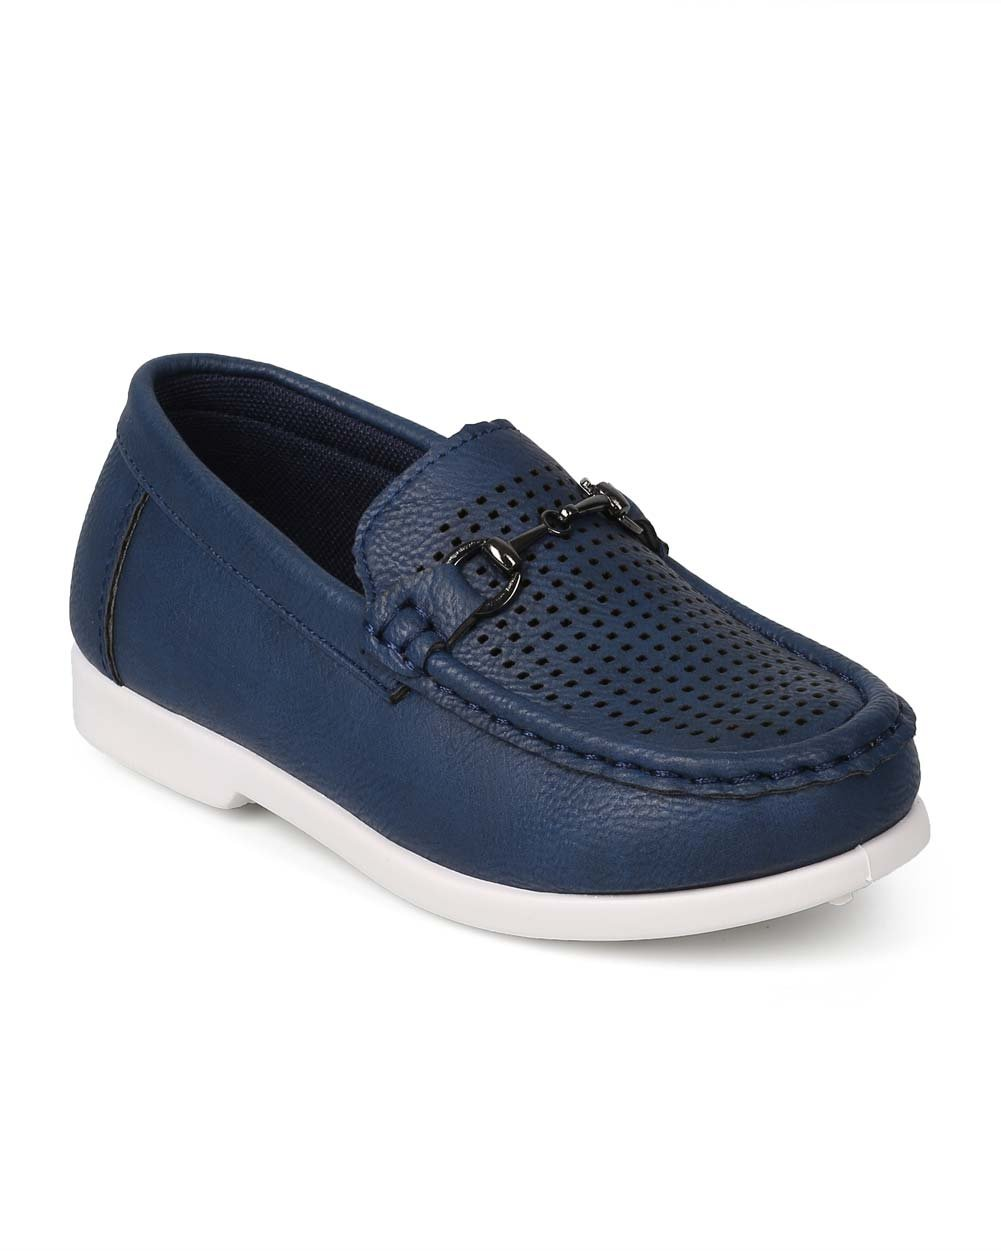 JELLYBEANS Leatherette Round Toe Perforated Chain Slip On Loafer (Toddler) EJ47 - Navy (Size: Toddler 5) by JELLYBEANS (Image #1)